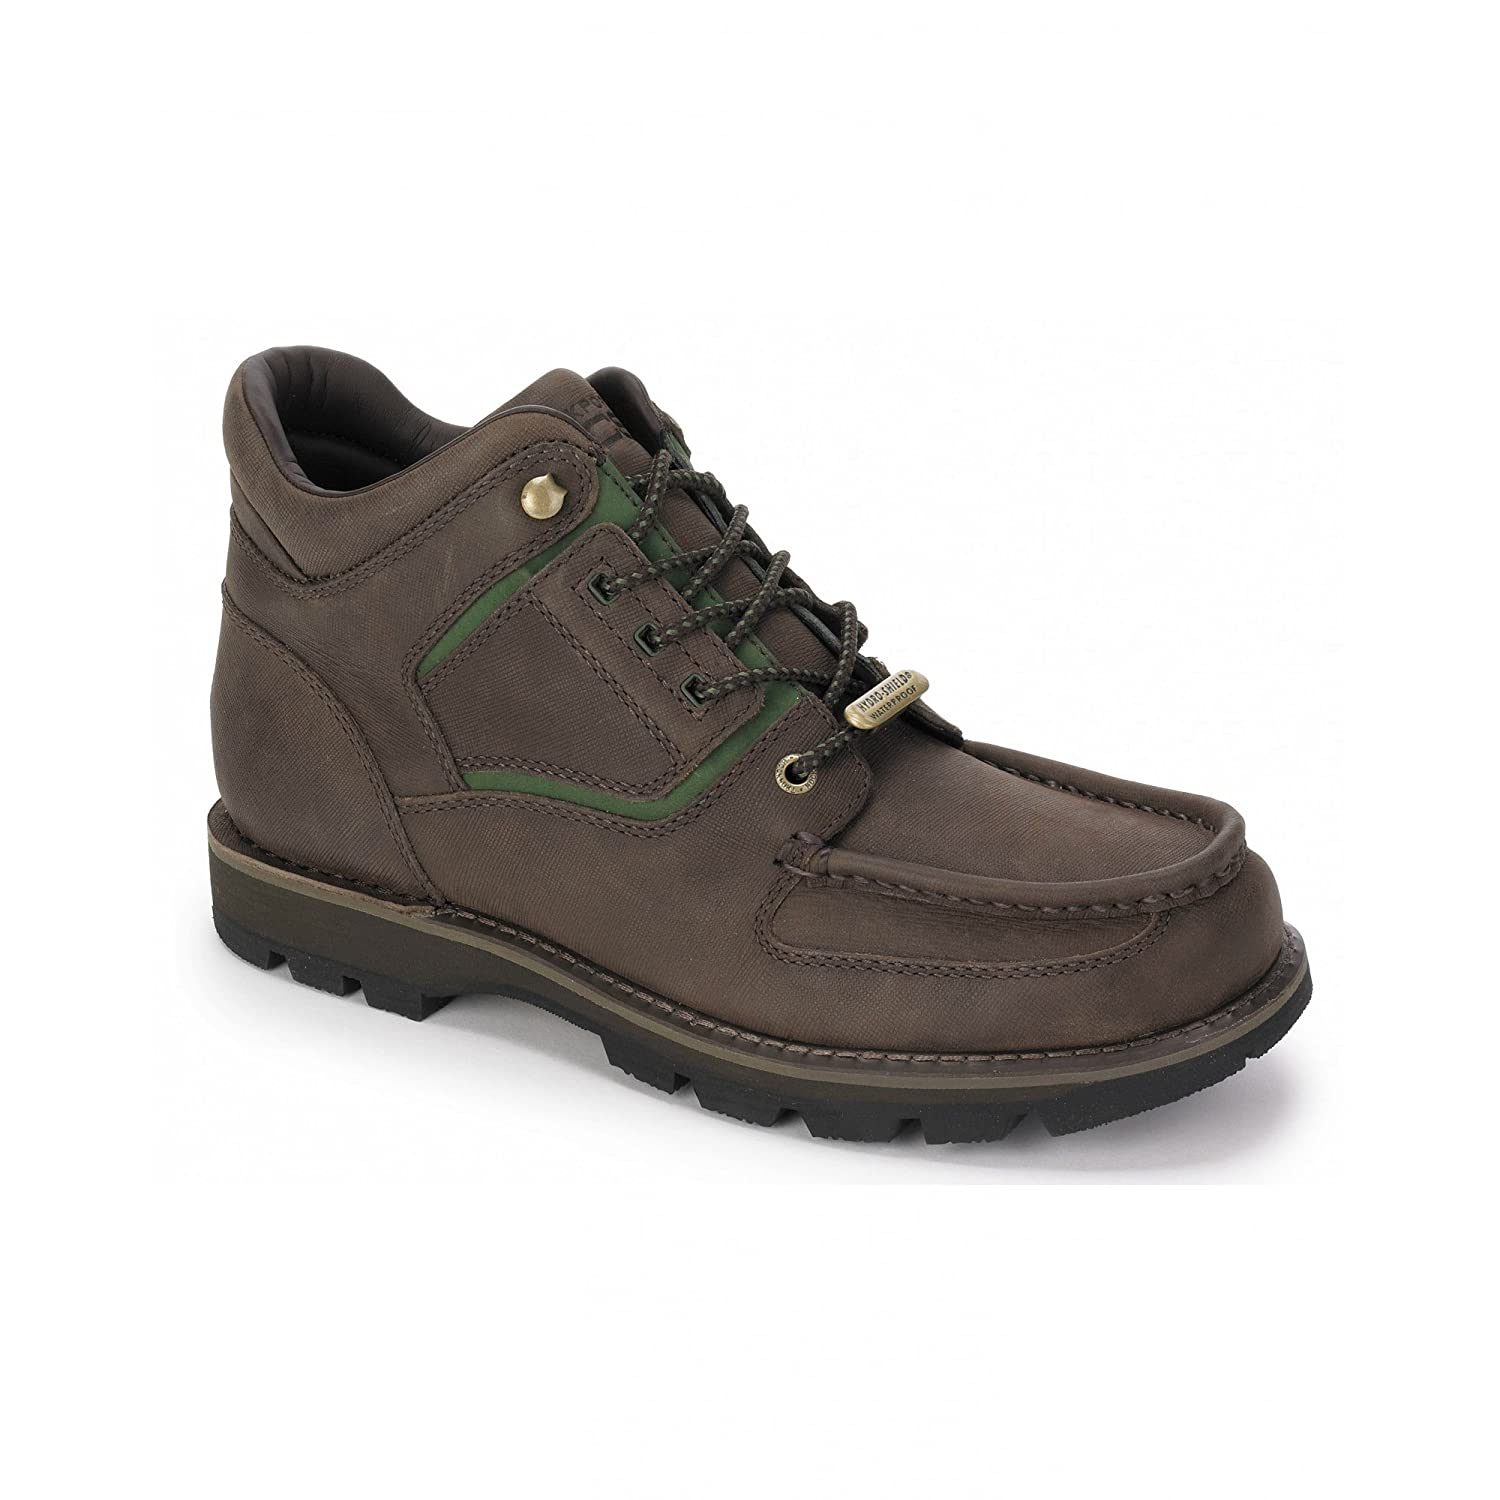 4bef3337bc9b91 Rockport Mens Treeline Trek Umbwe Trail Lace-Up Boots (7 UK) (BLACK)  Buy  Online at Low Prices in India - Amazon.in